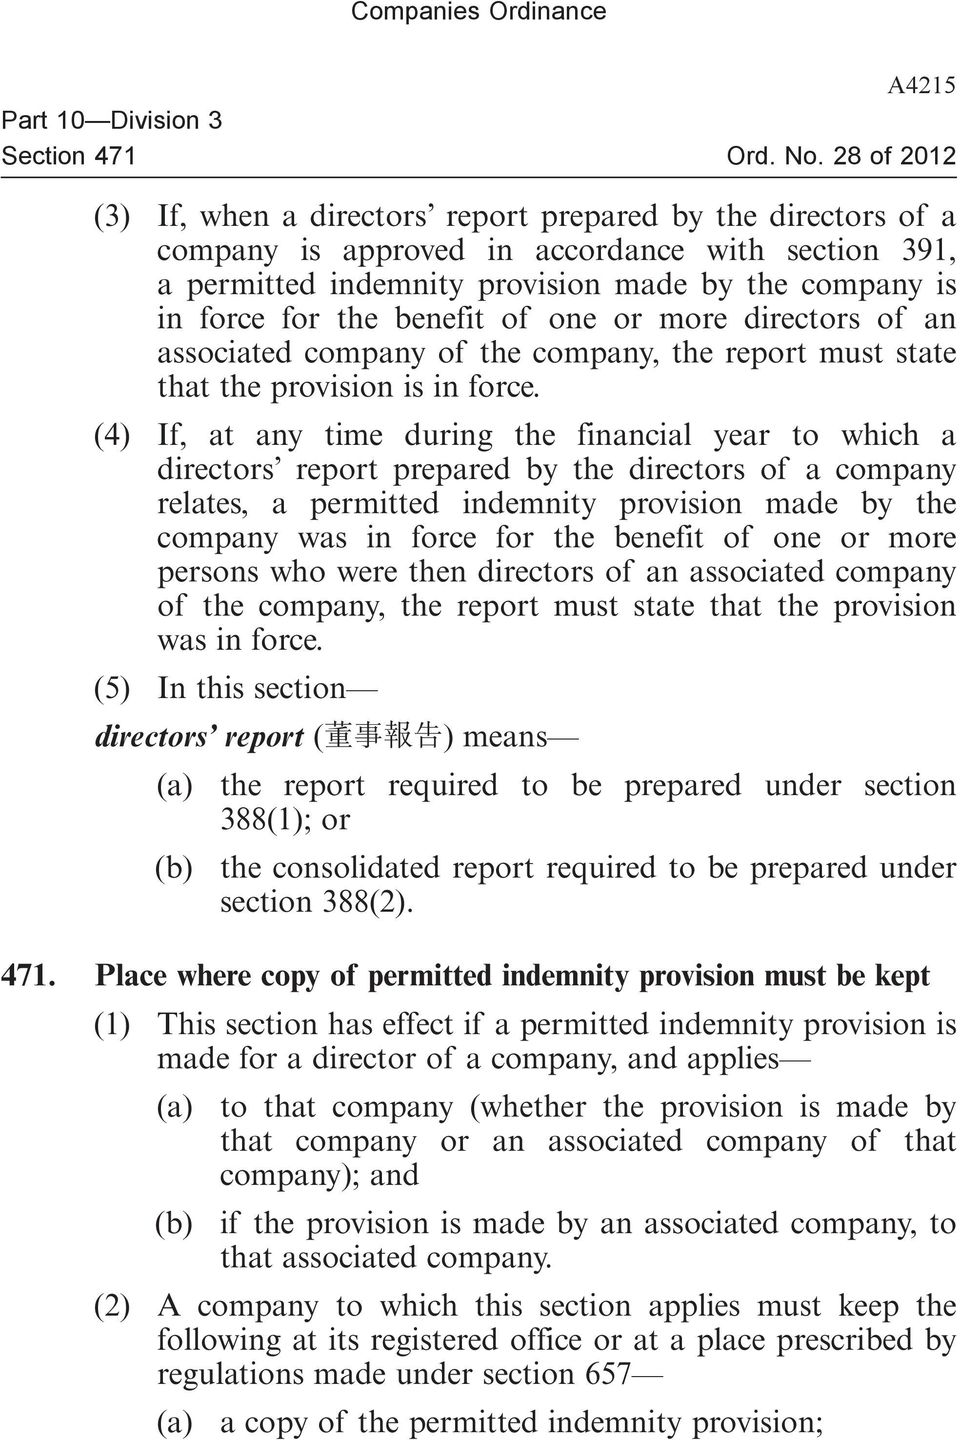 (4) If, at any time during the financial year to which a directors report prepared by the directors of a company relates, a permitted indemnity provision made by the company was in force for the